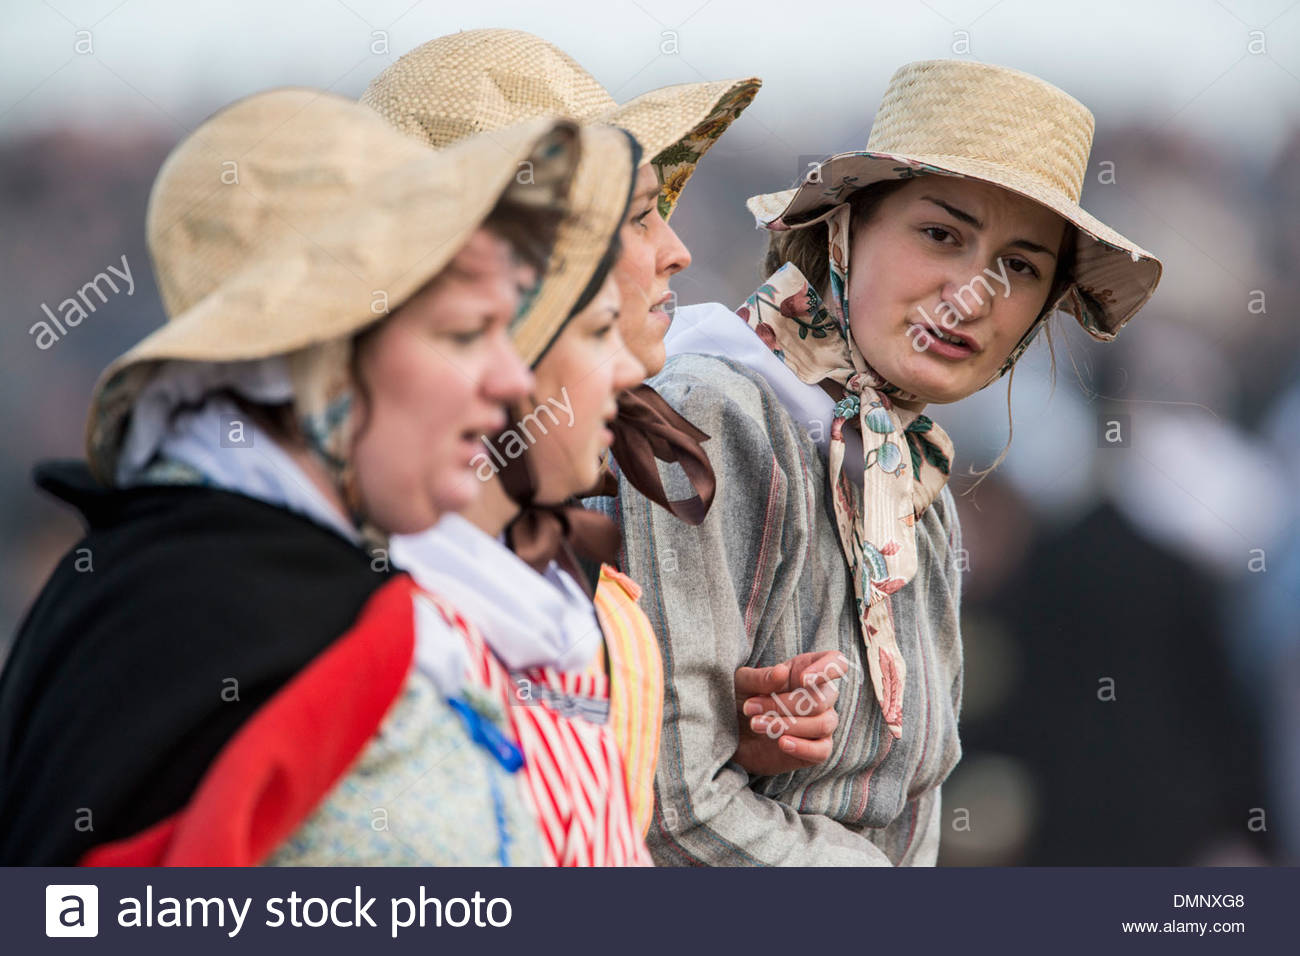 Netherlands, Scheveningen. Bicentenary. Historic landing at Scheveningen beach. Fishermen and women in traditional - Stock Image